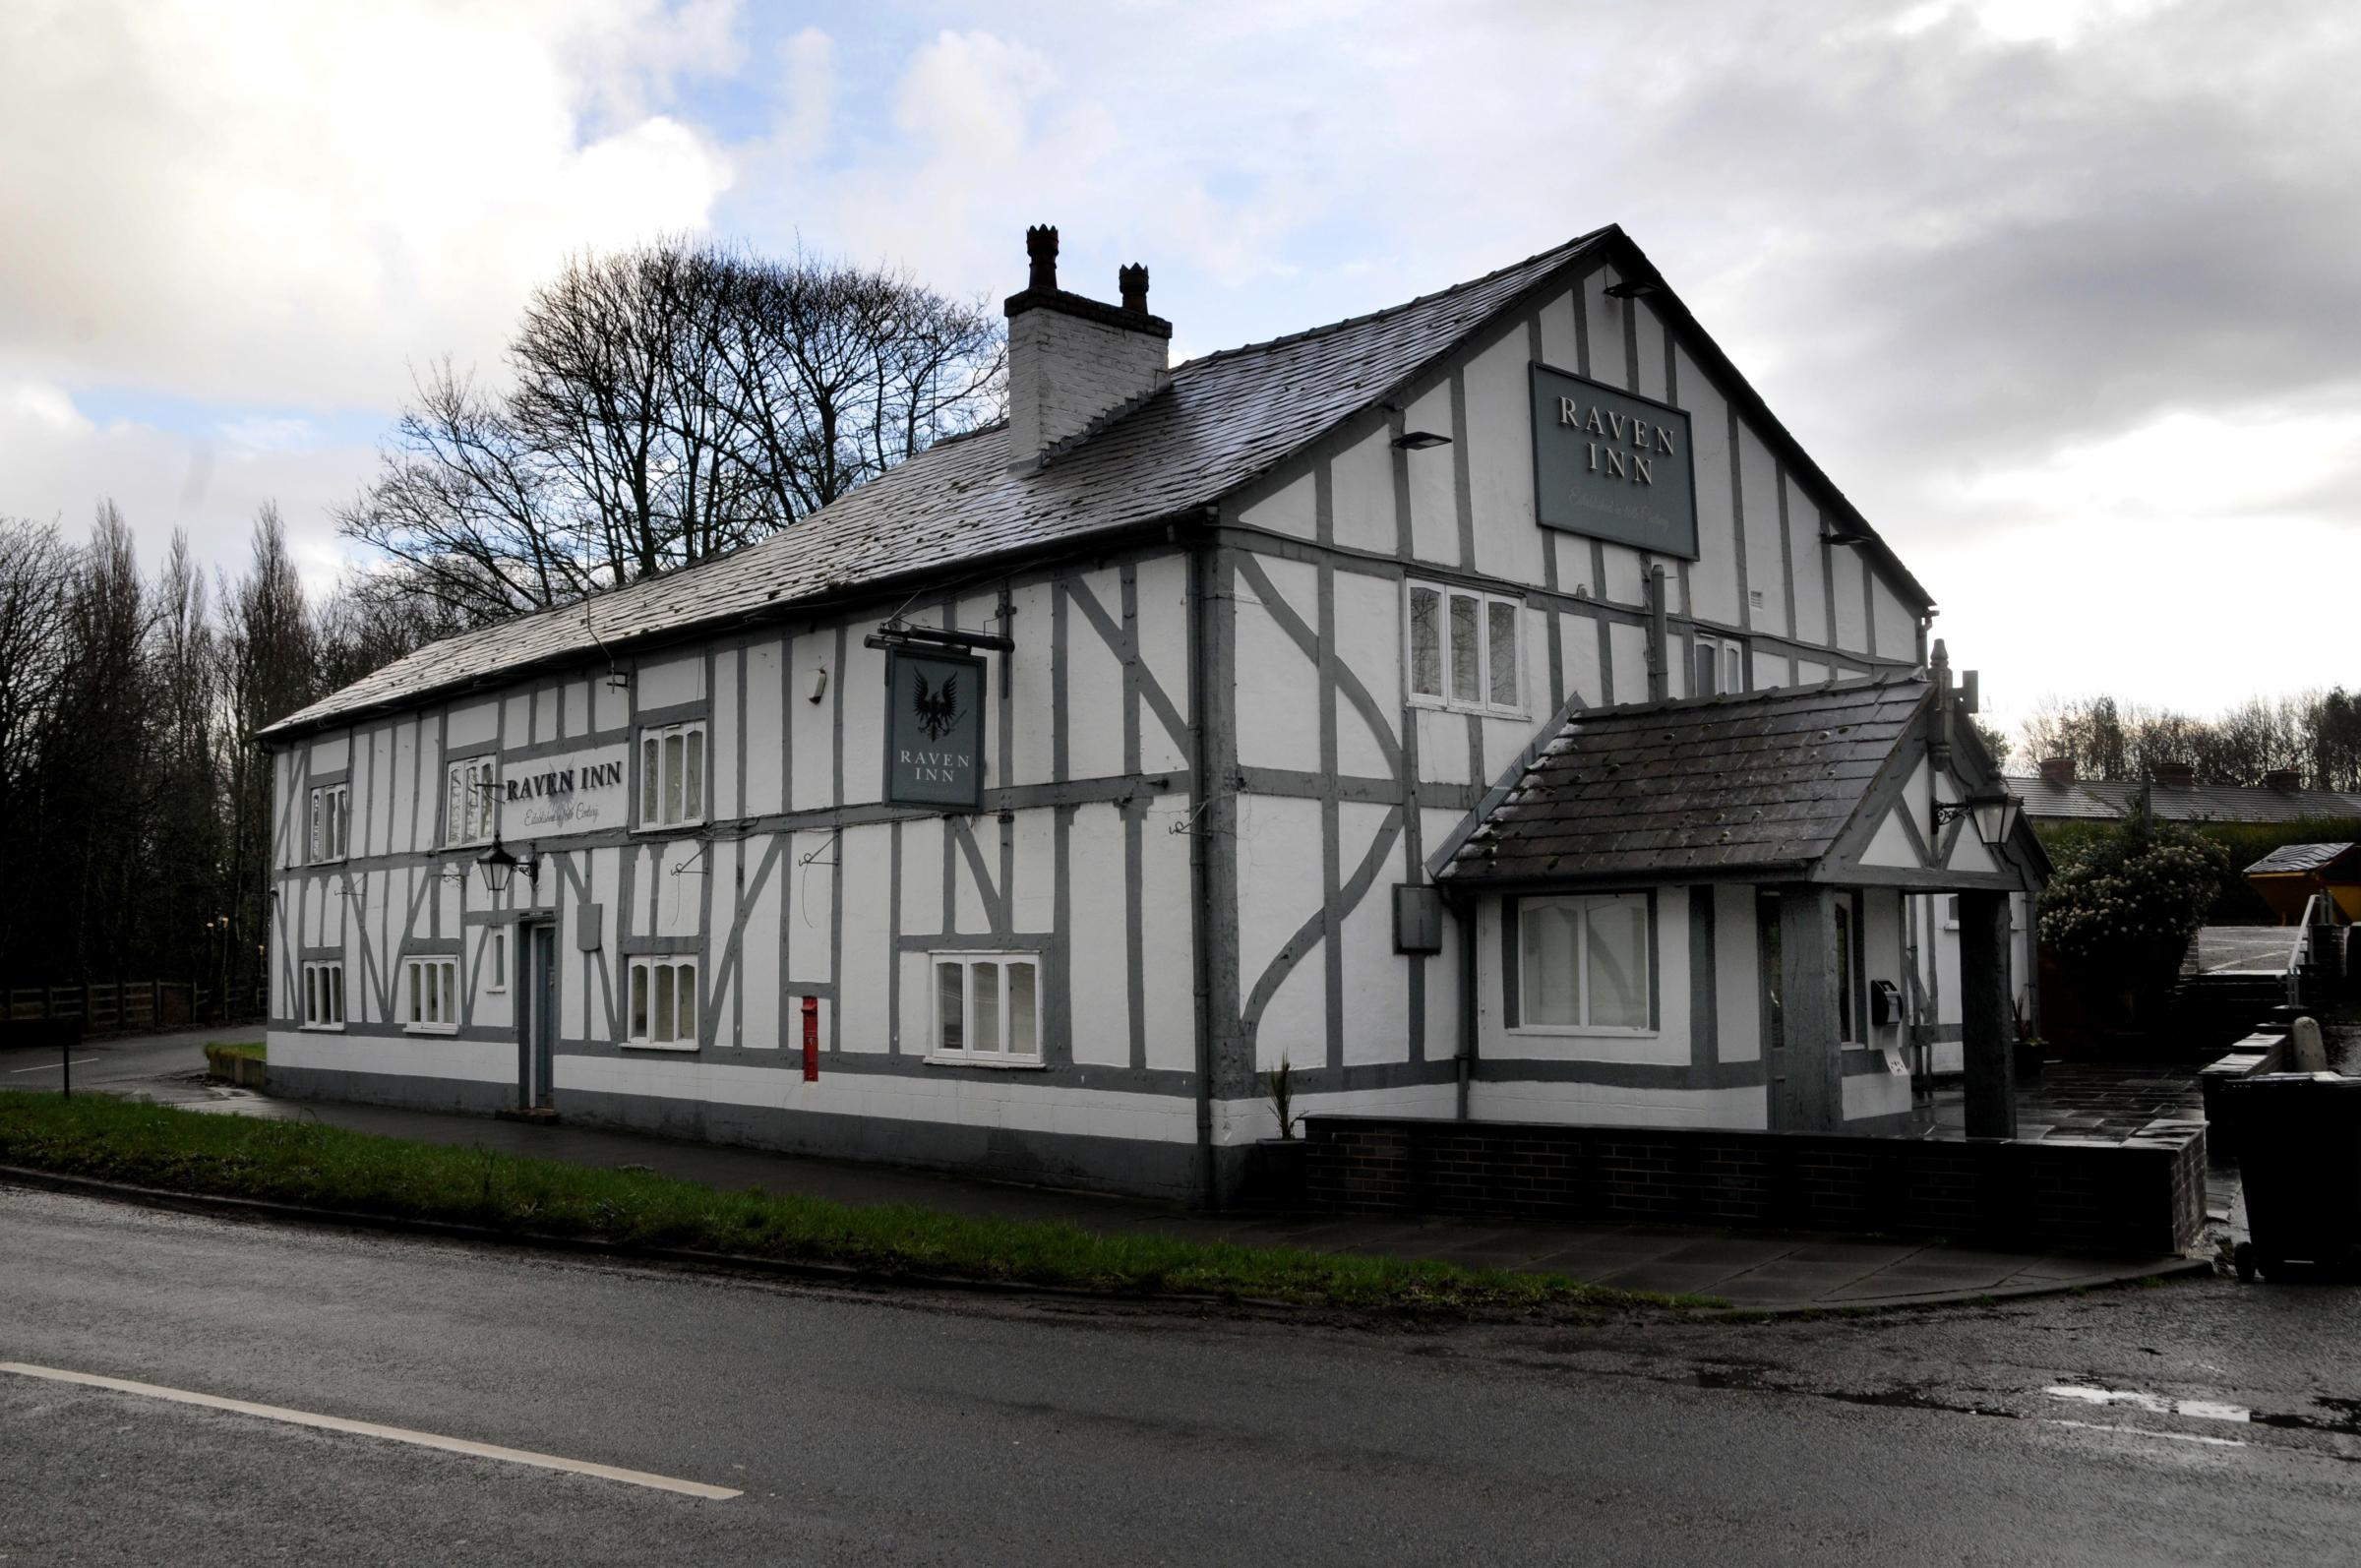 Leader: Council has displayed commitment to protecting heritage